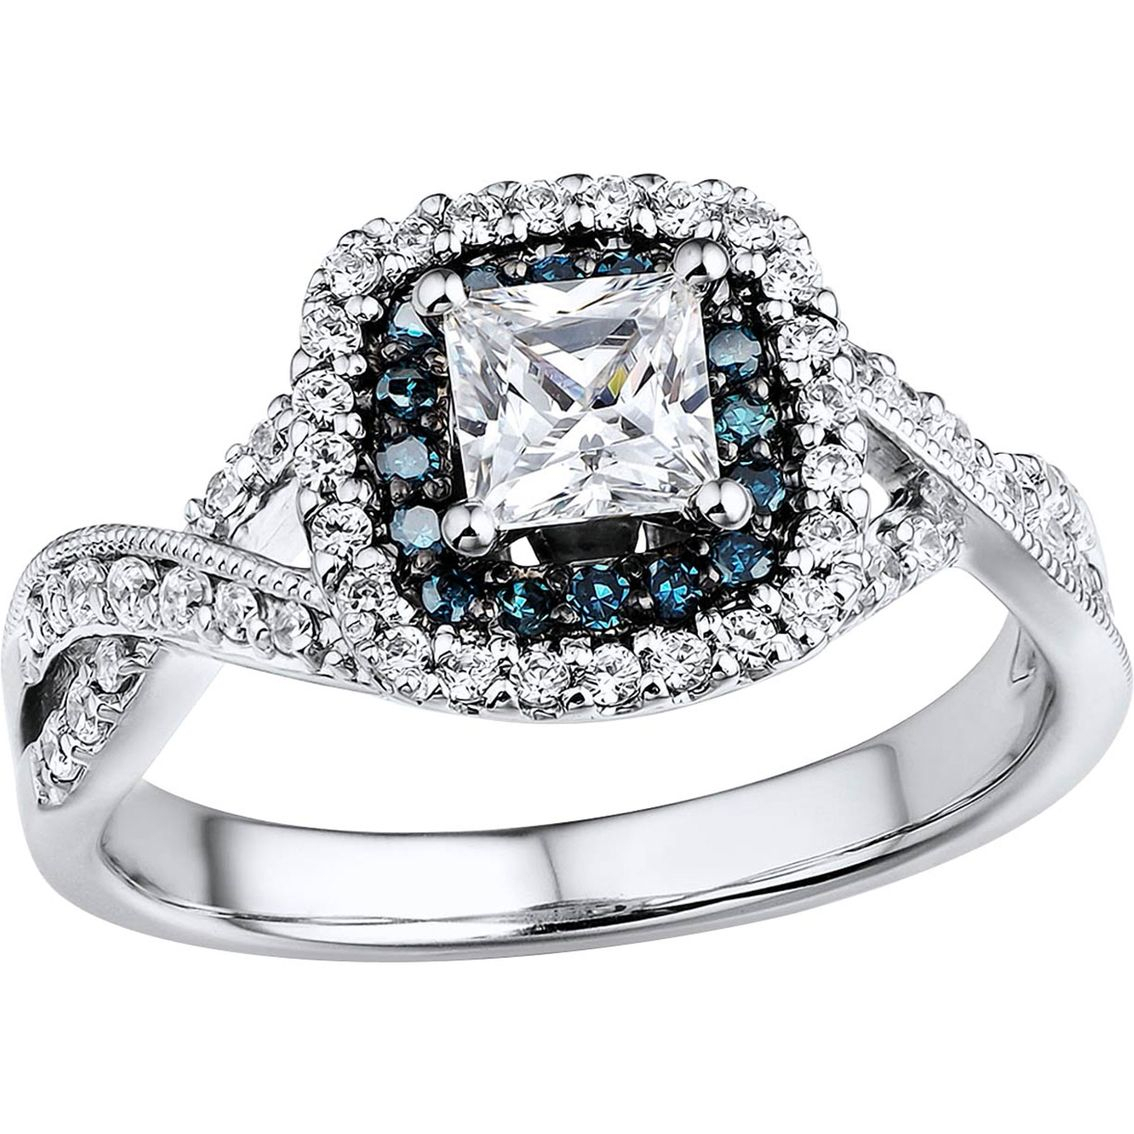 Elegant In Every Detail, This Engagement Ring Boasts A 1/2 Intended For Most Current Enhanced Blue And White Diamond Anniversary Bands In White Gold (Gallery 9 of 25)